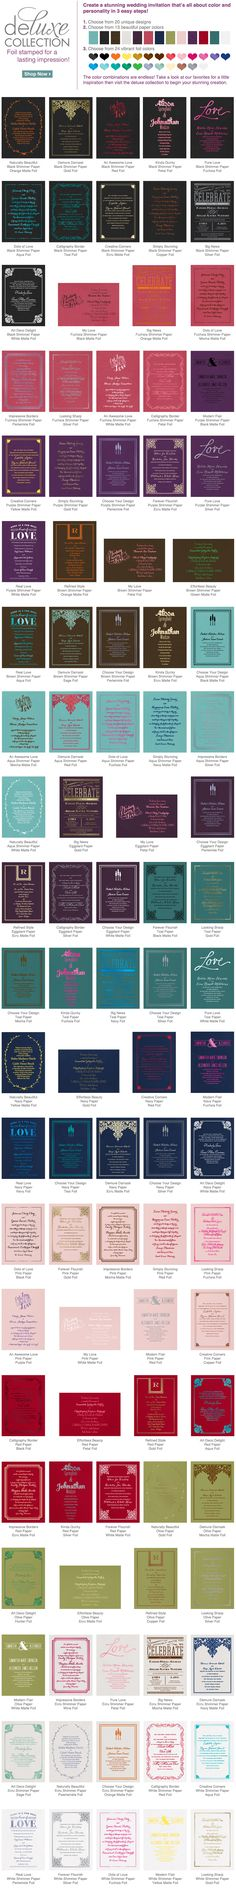 the deluxe collection I foil wedding invitations I color combo idea gallery!